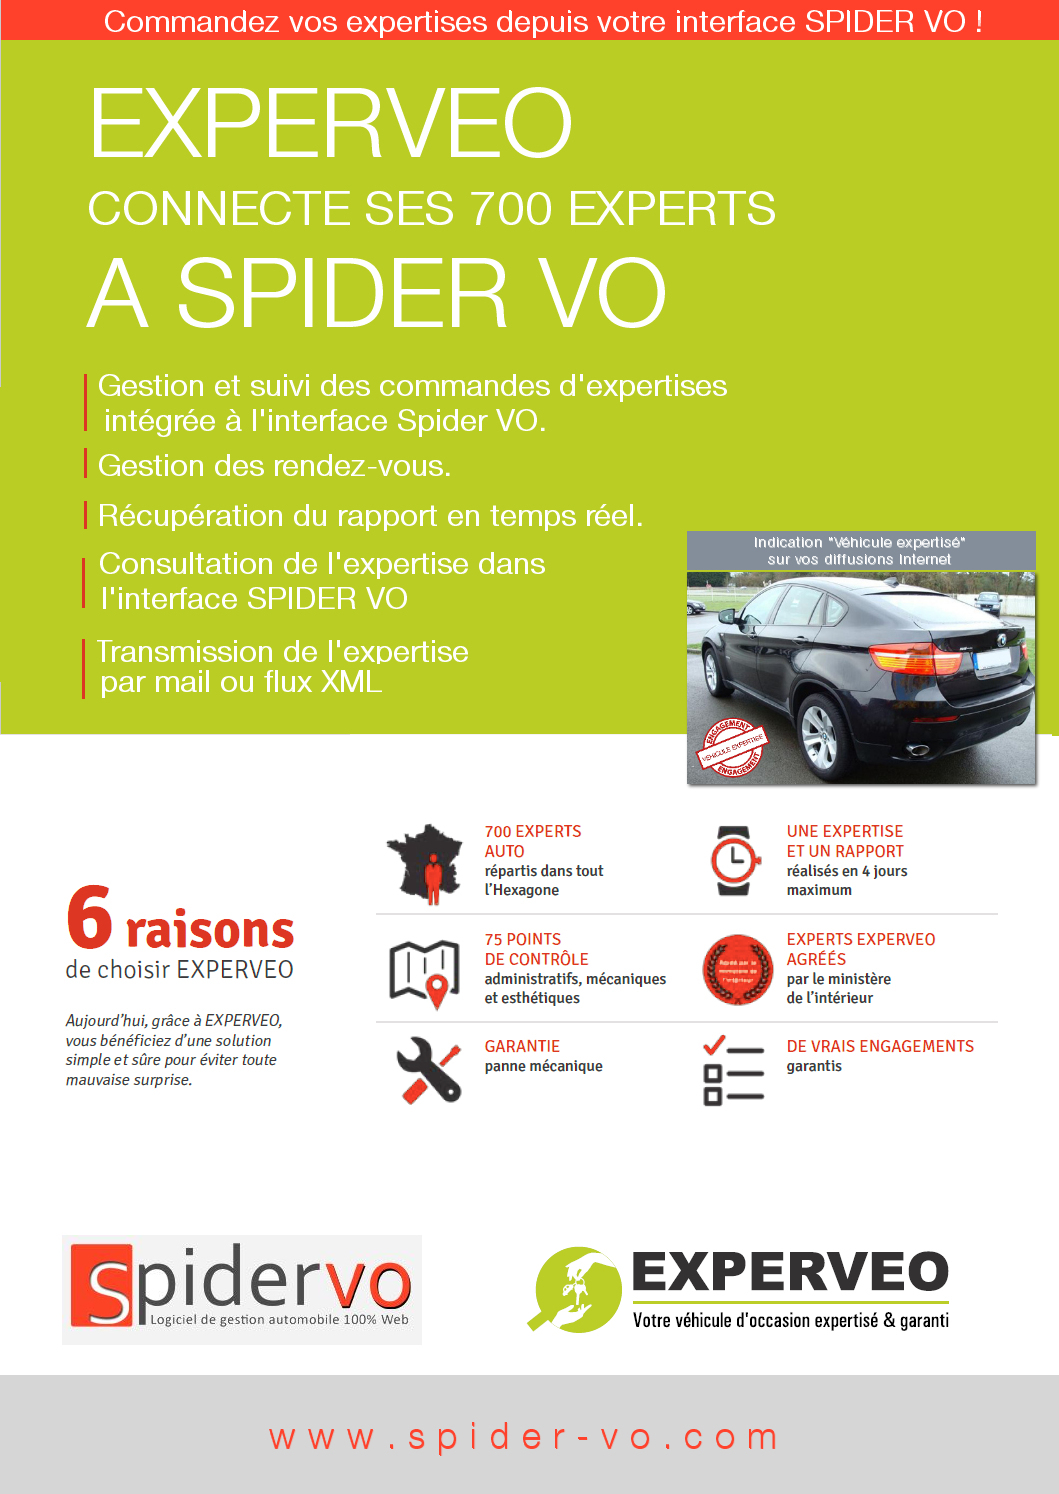 EXPERVEO connecte ses 700 experts à SPIDER VO ! 5